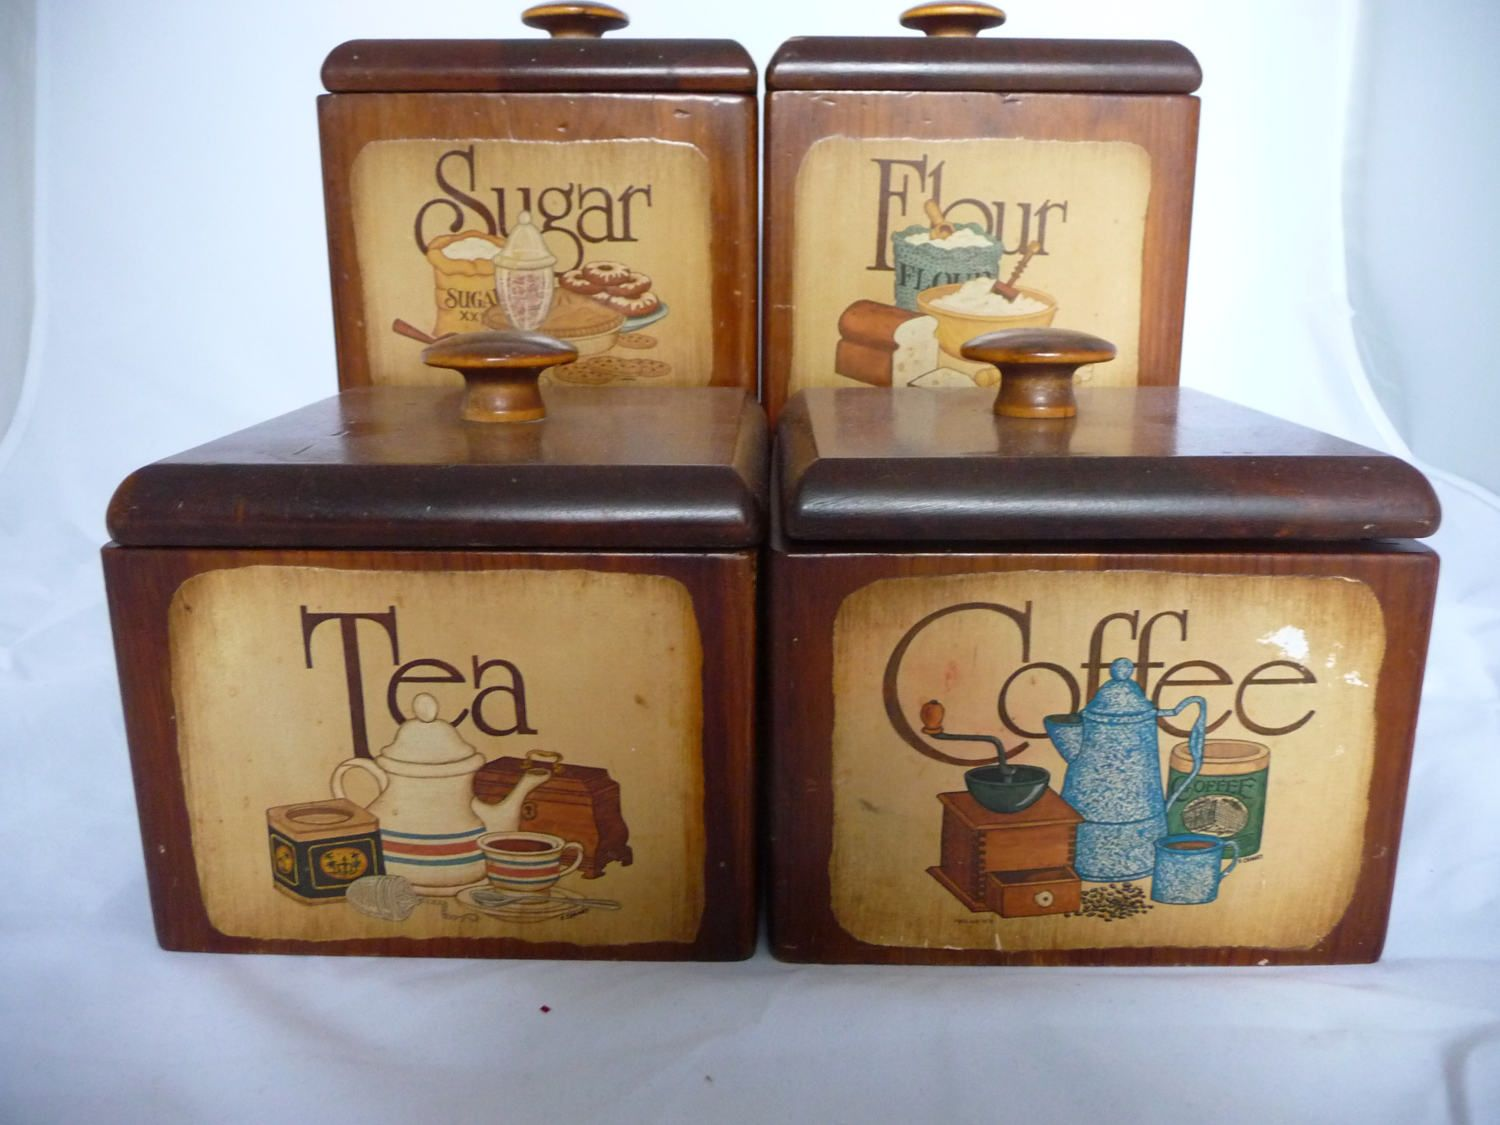 wooden canisters kitchen wooden kitchen canisters with pictures of sugar flour tea coffee by saltofmotherearth on etsy 2705